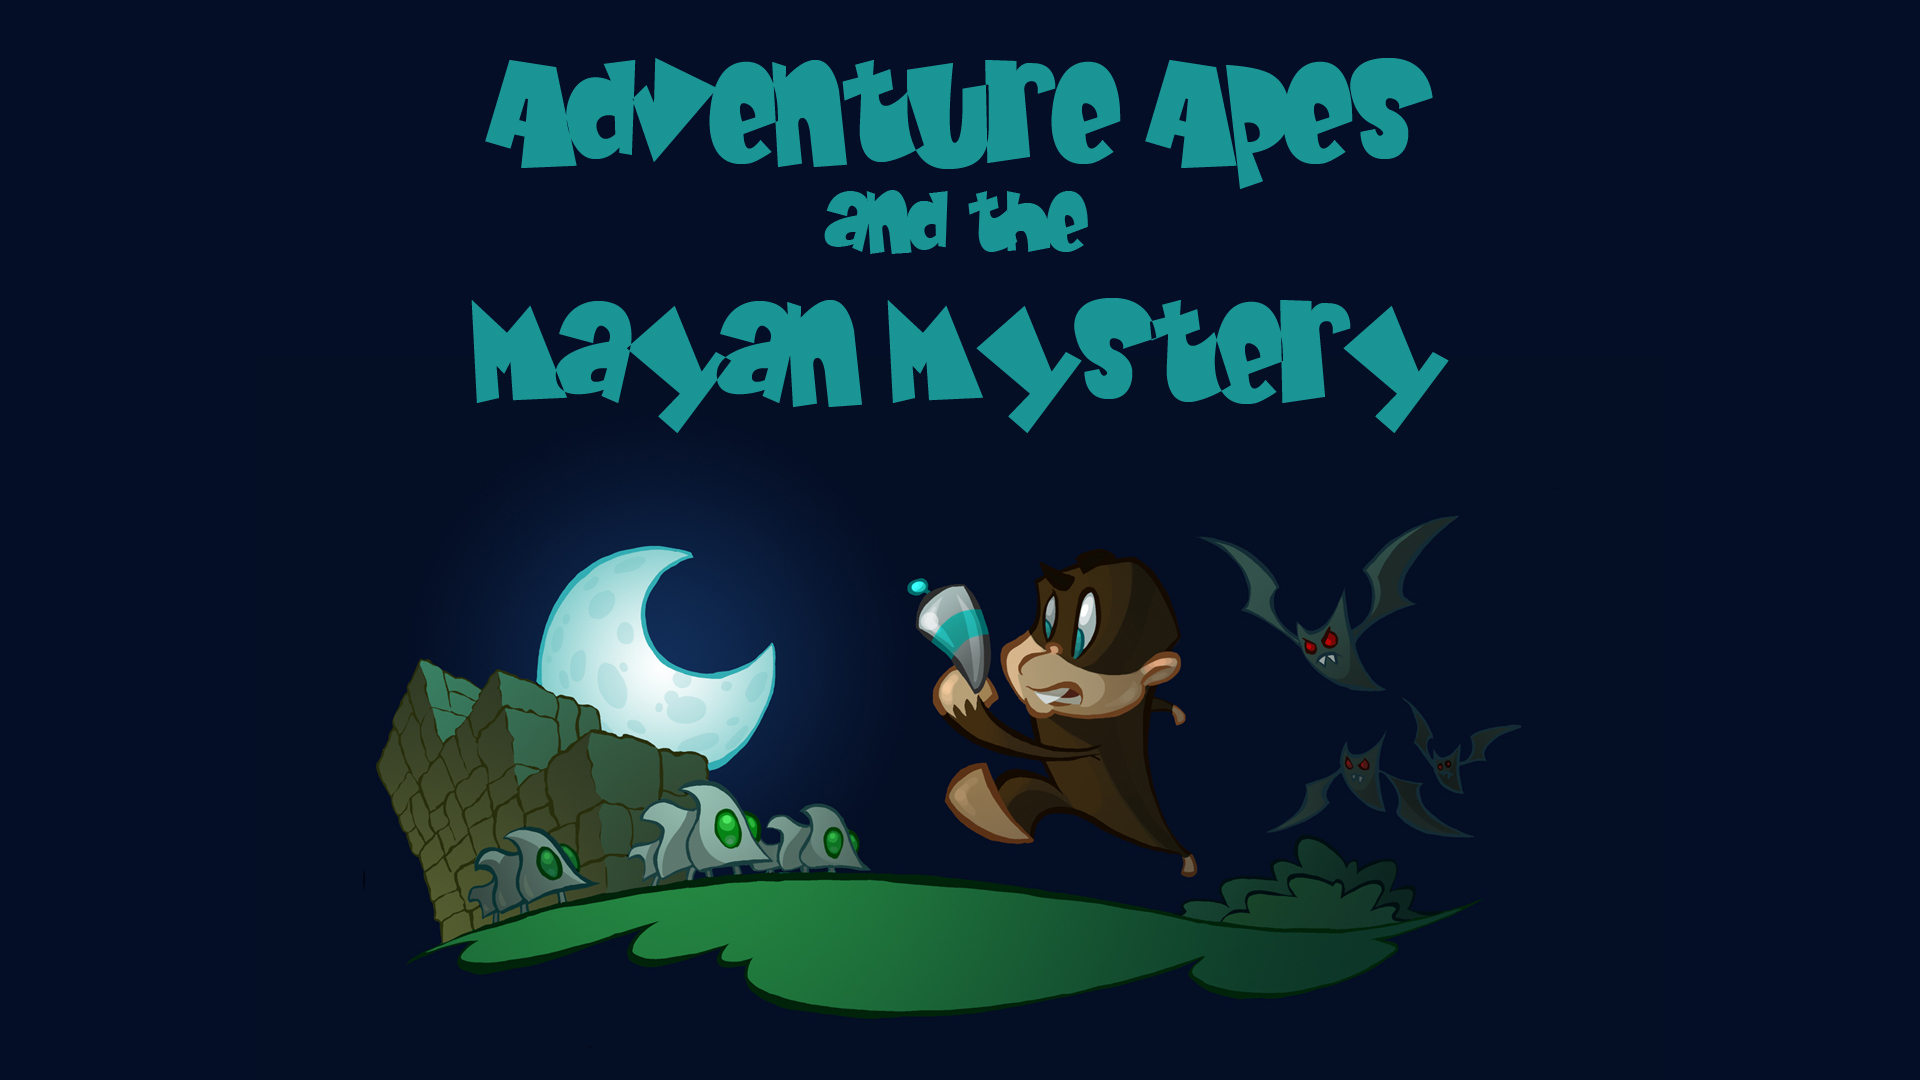 ADVENTURE APES AND THE MAYAN MYSTERY itch.io